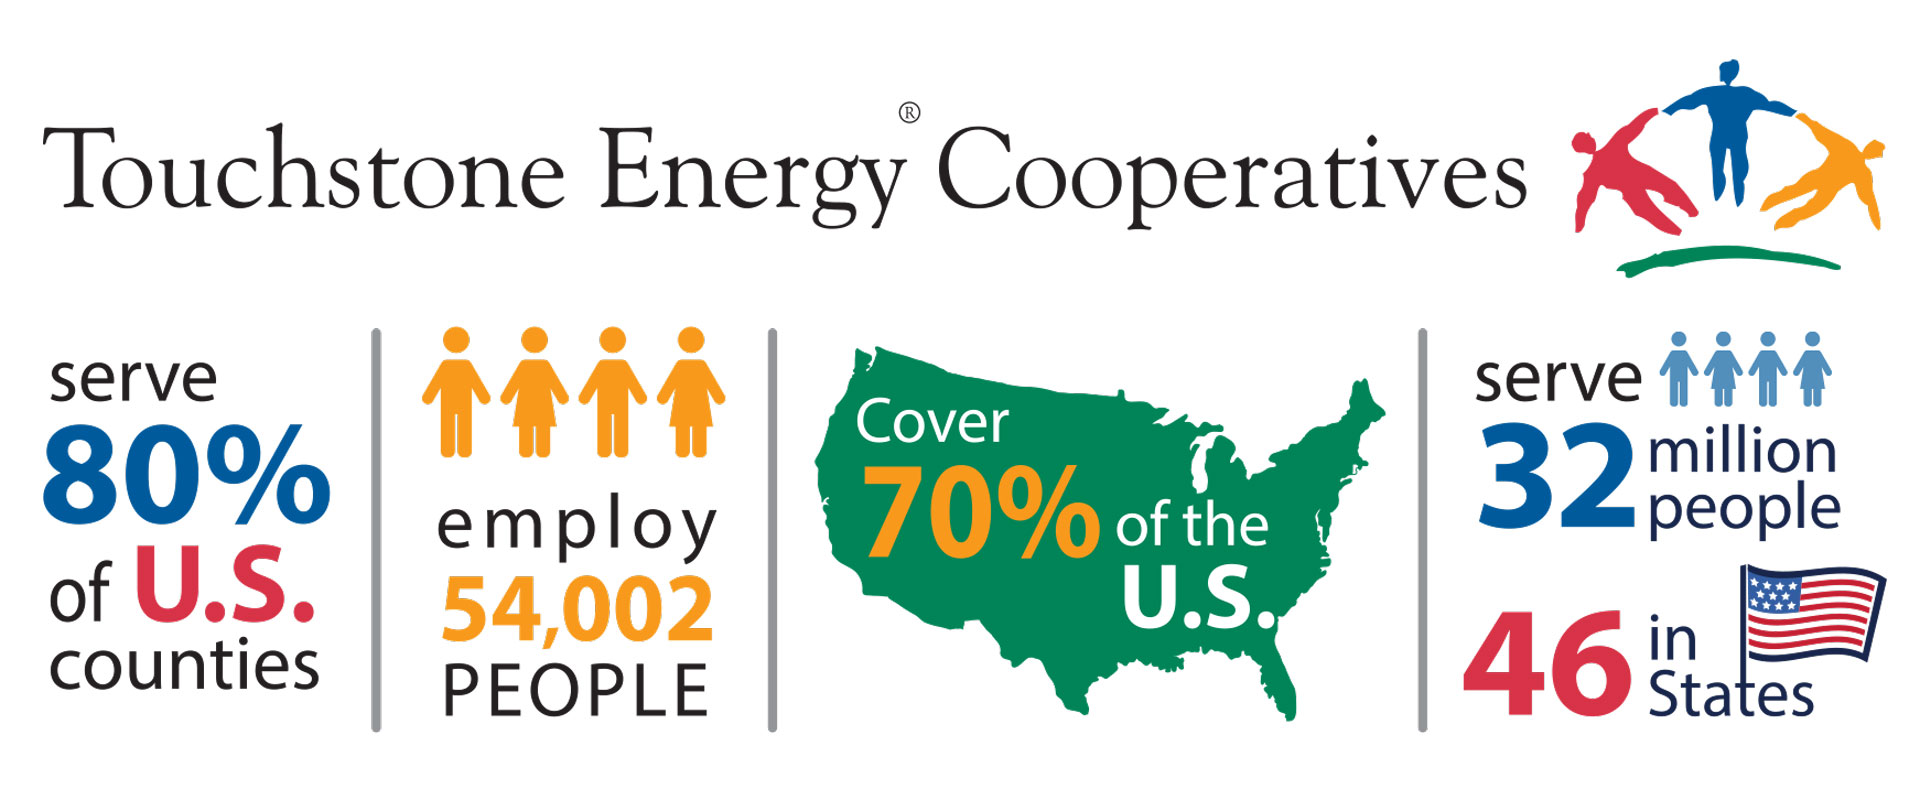 Touchstone Energy Facts